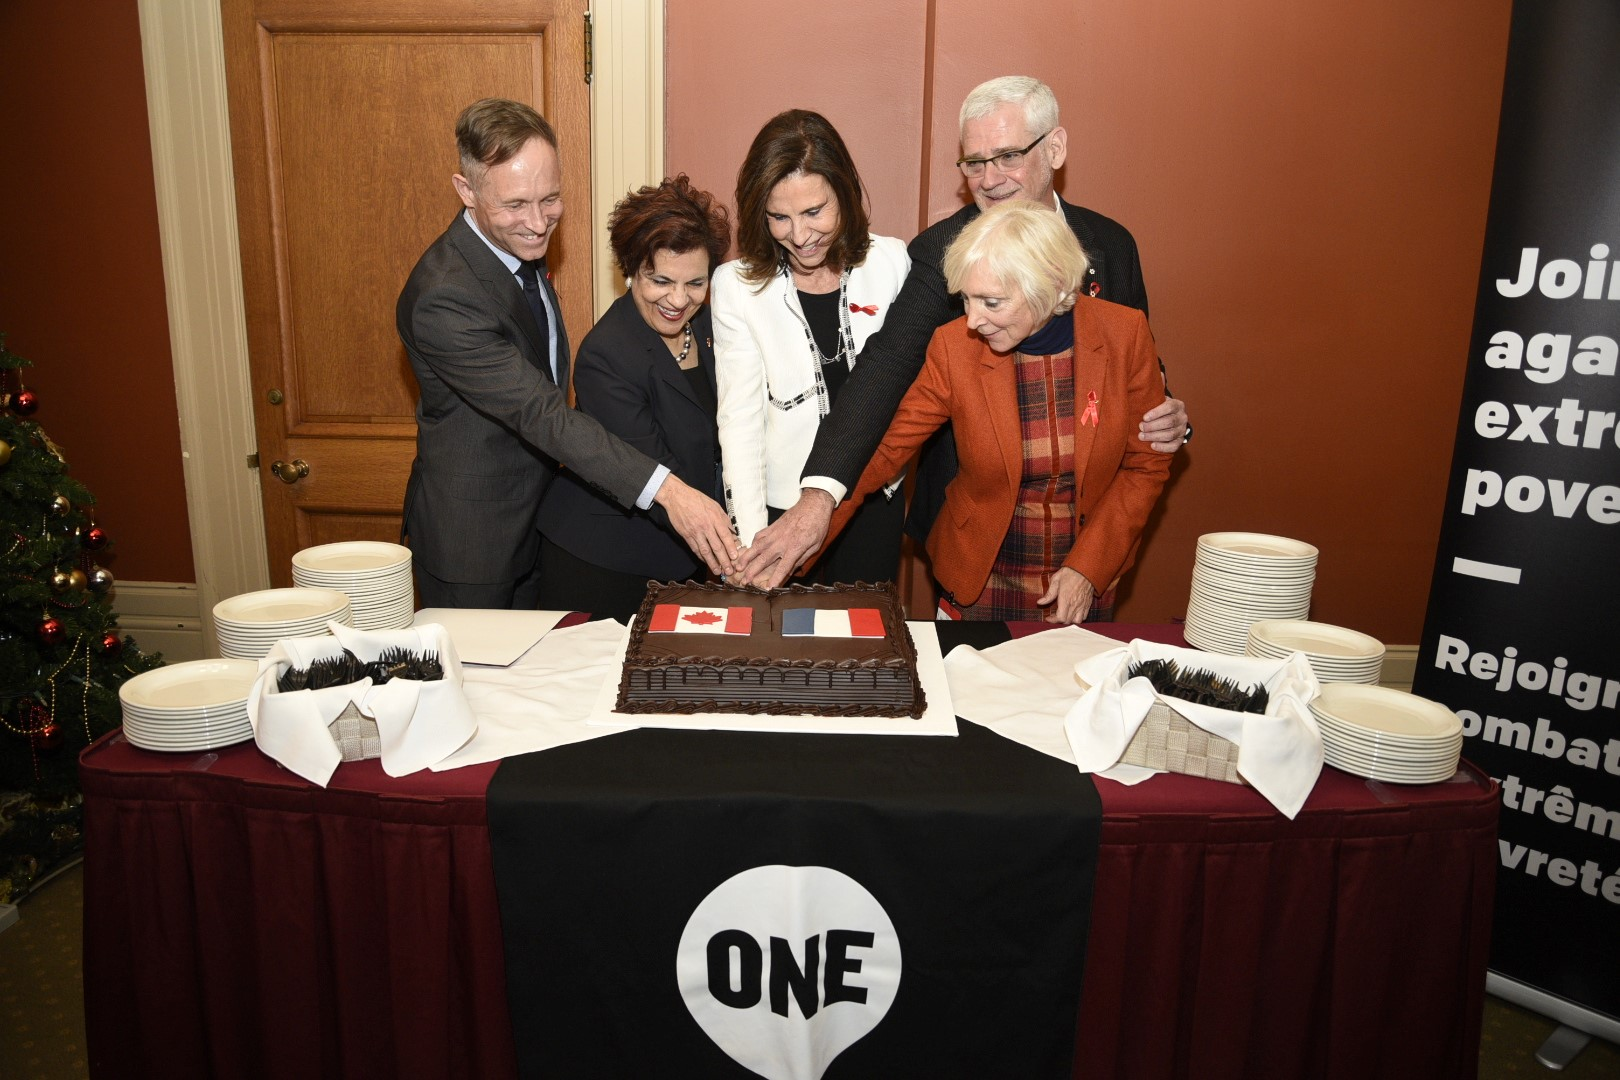 Symbolizing the transition of leadership for the replenishment of the Global Fund, from Canada to France, Stuart Hickox, Senator Jaffer, Ambassador Rispal, Dr. Montaner and Dr. Presern cut a cake featuring the flags of the two countries.